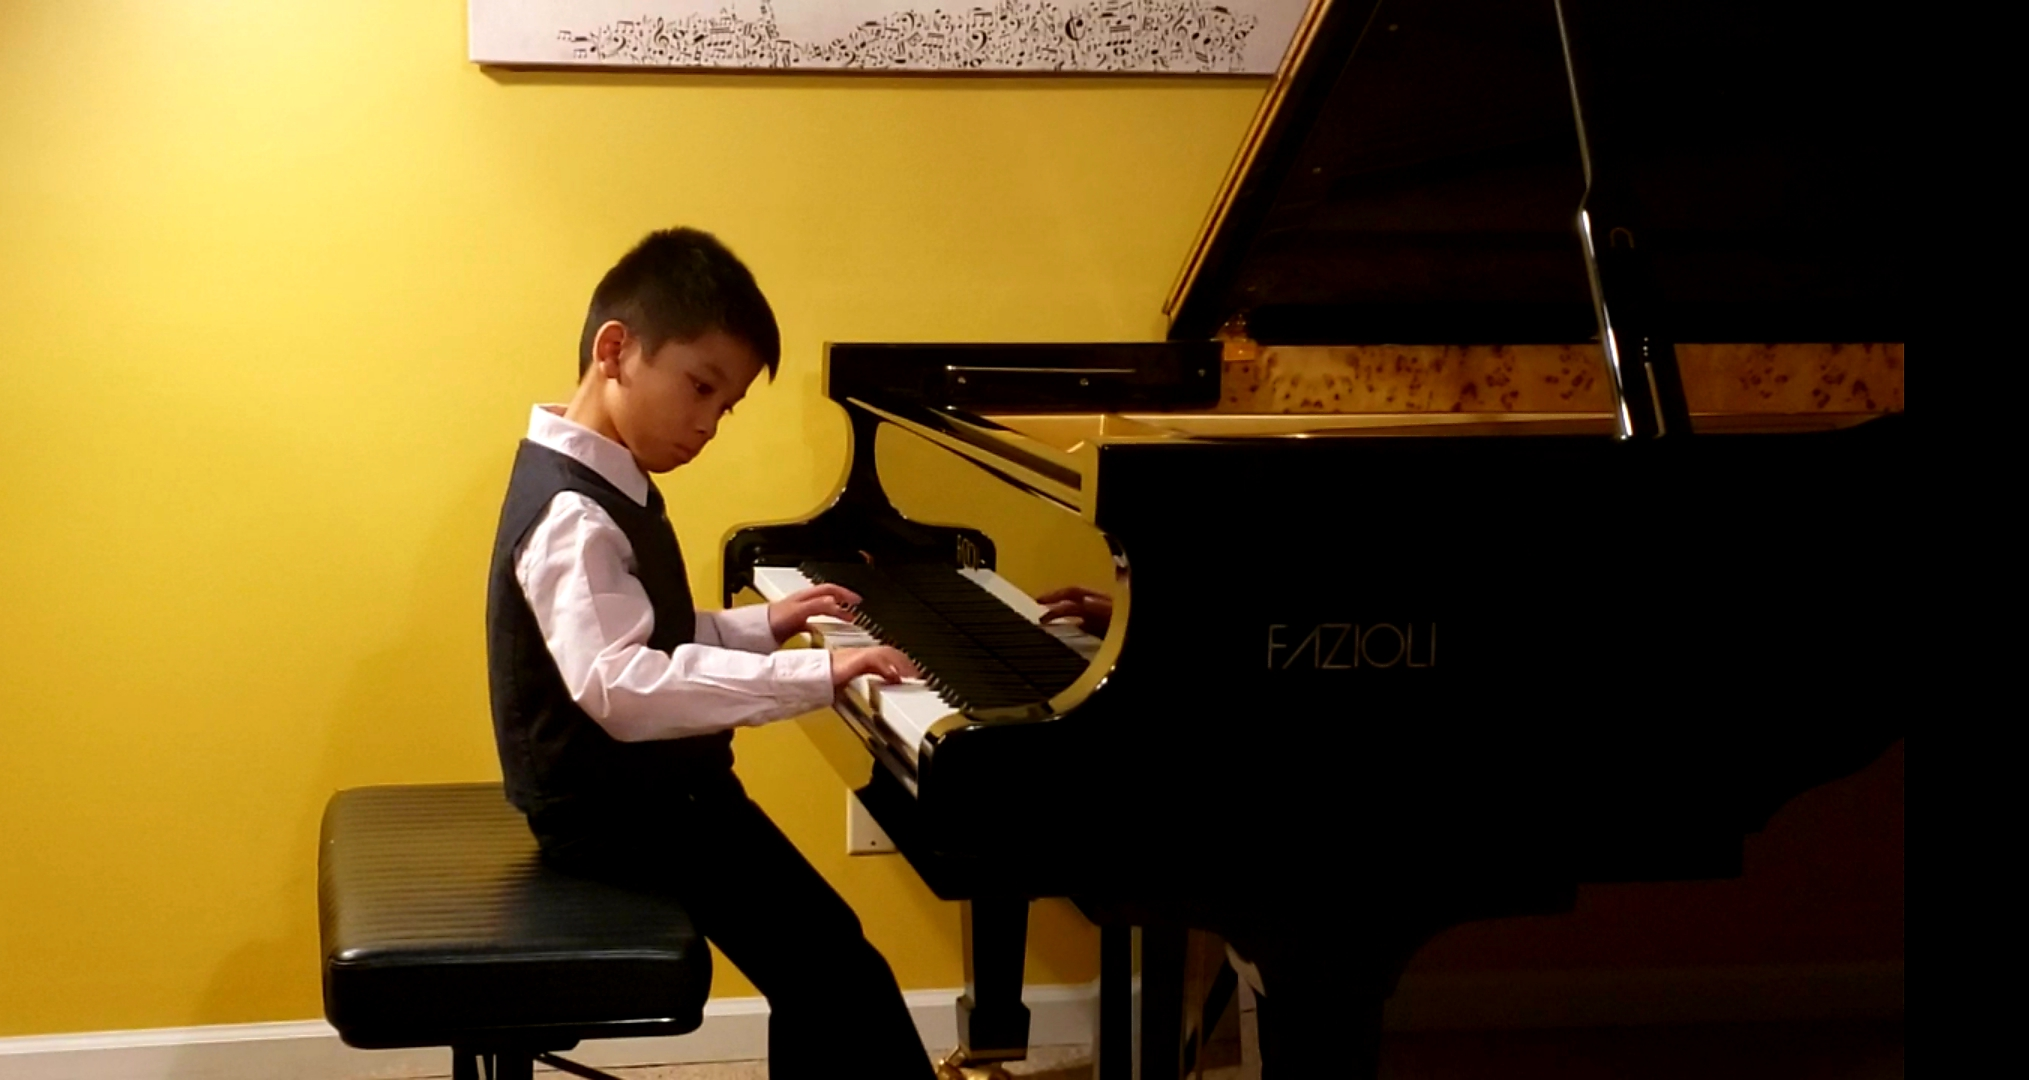 BACH NGUYEN (8 y.o.) WON 1st PRIZE AT THE ELITE MUSIC INTERNATIONAL COMPETITION.  The Winners' Recital will be held in March 2020 at Weill Recital Hall at Carnegie Hall in New York!